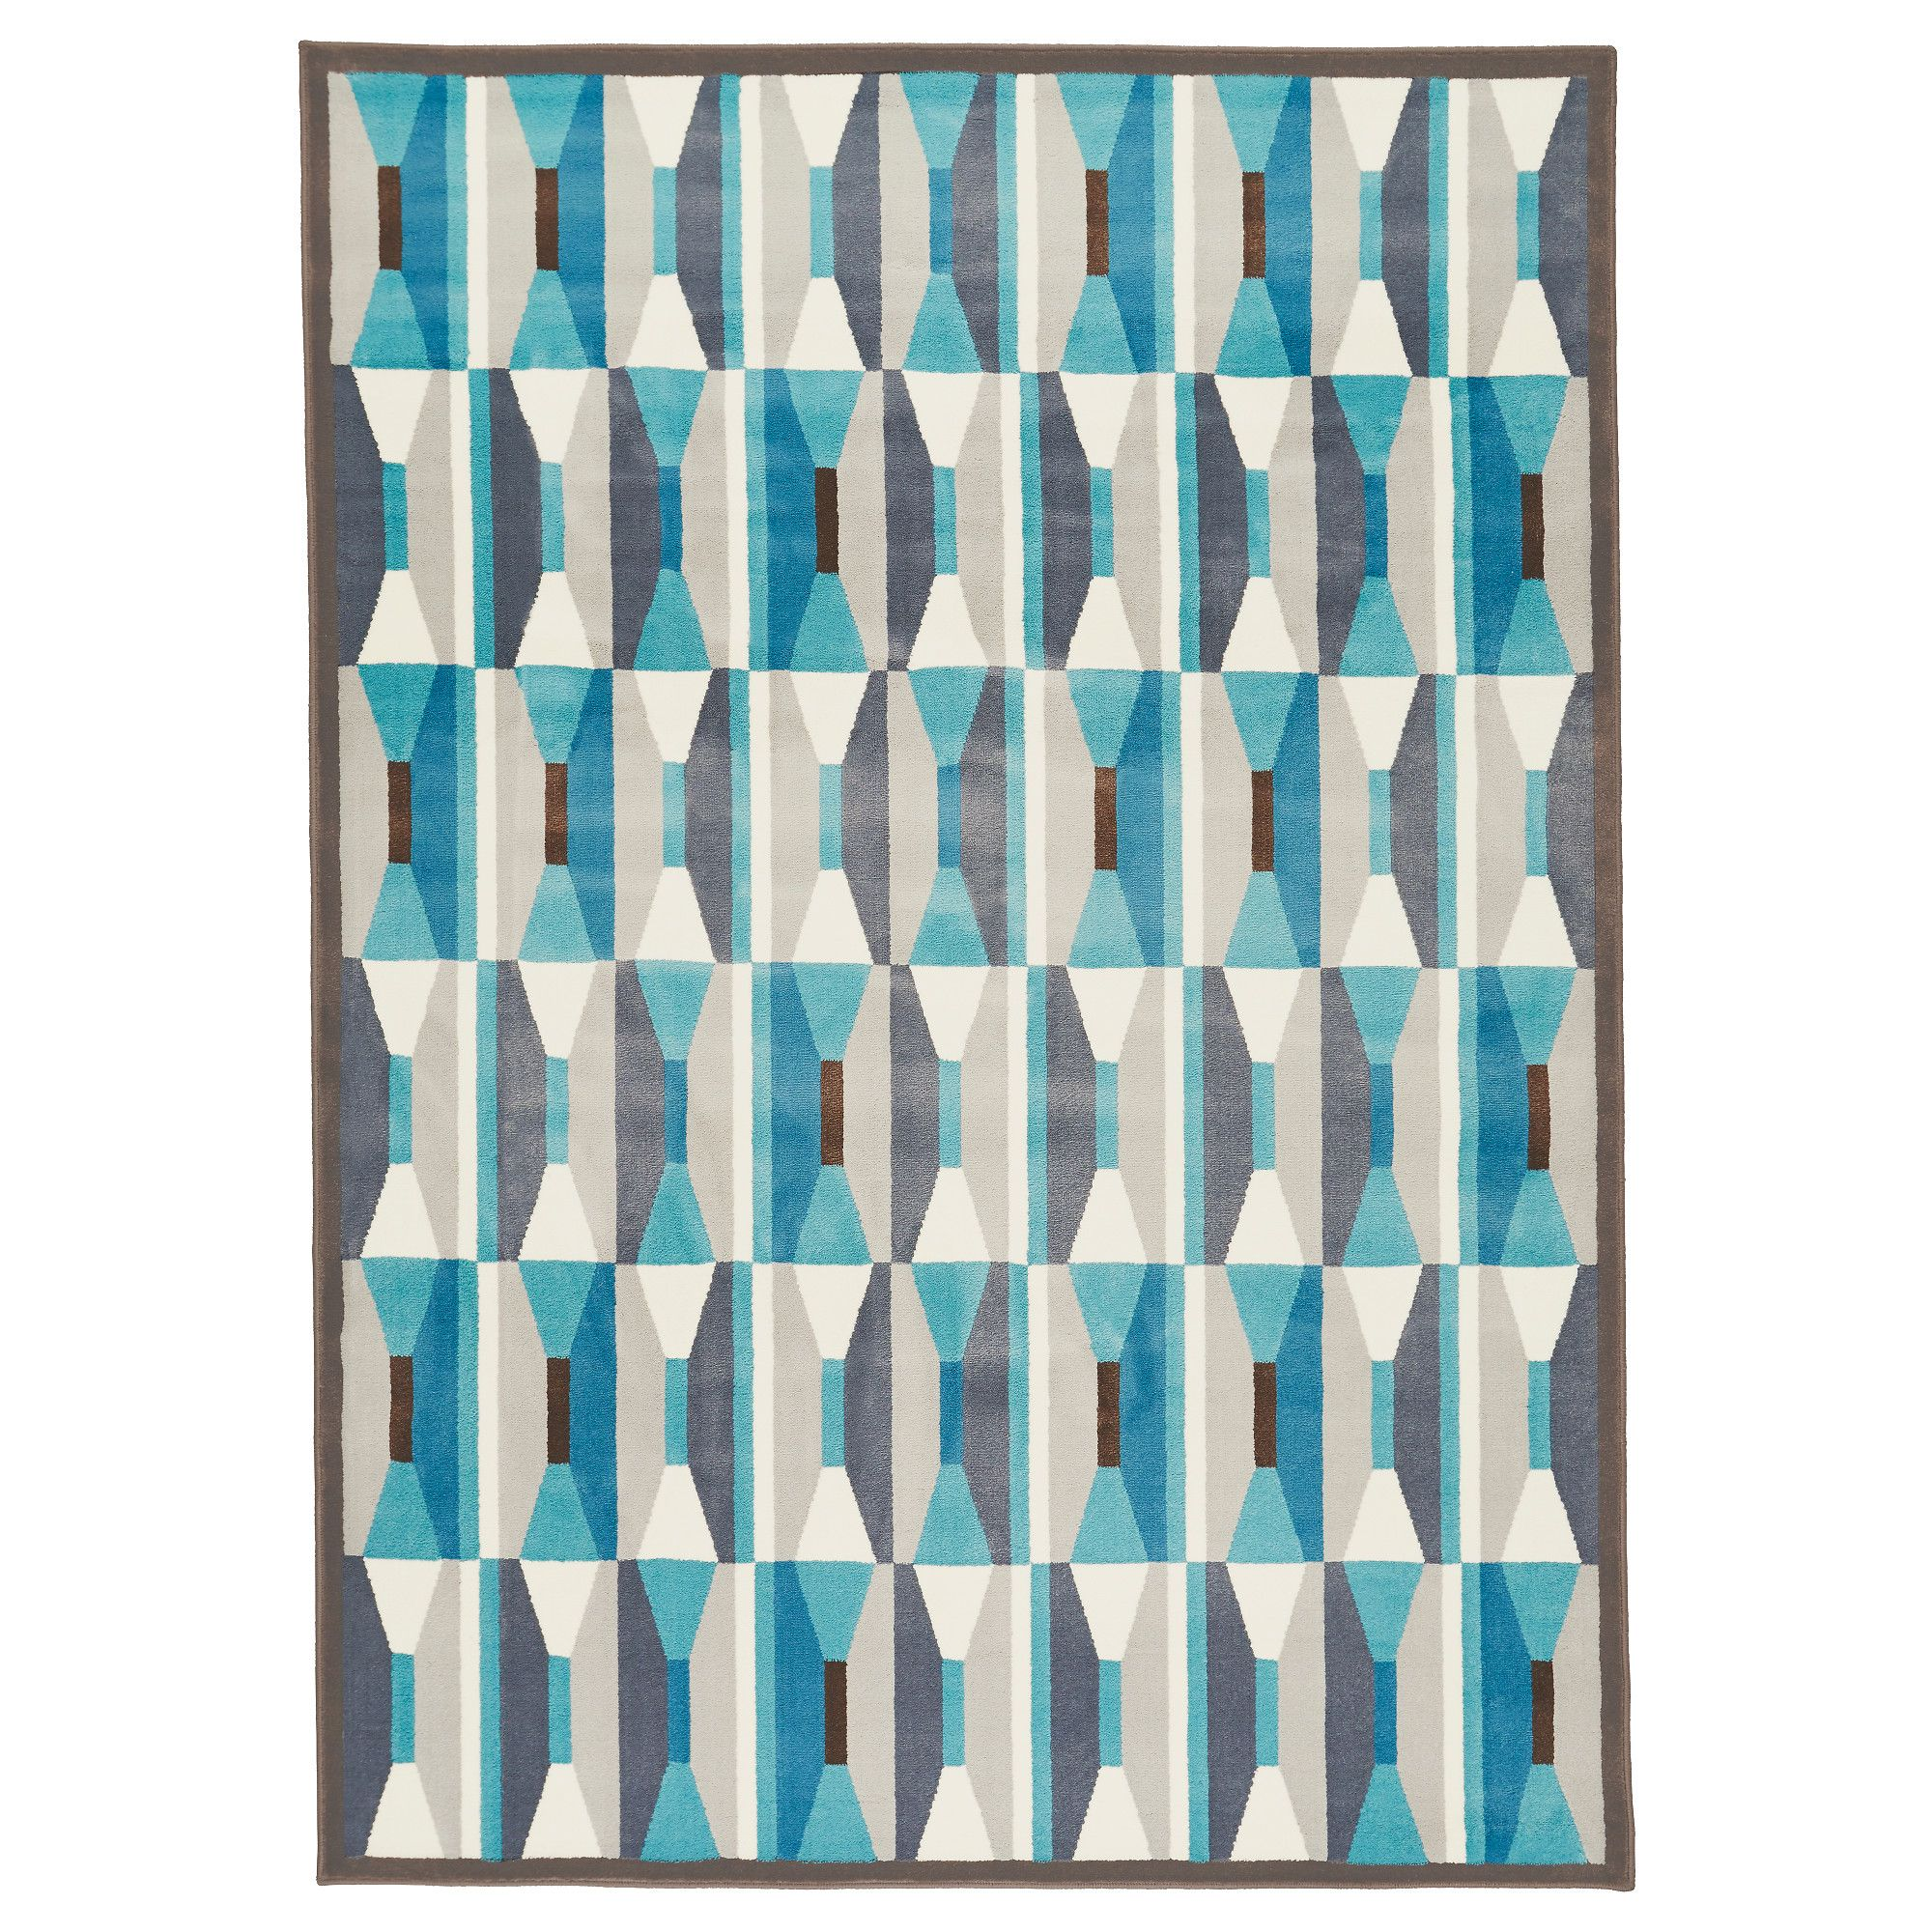 This Rug Incorporates All Our Main Living Colors So Well Its